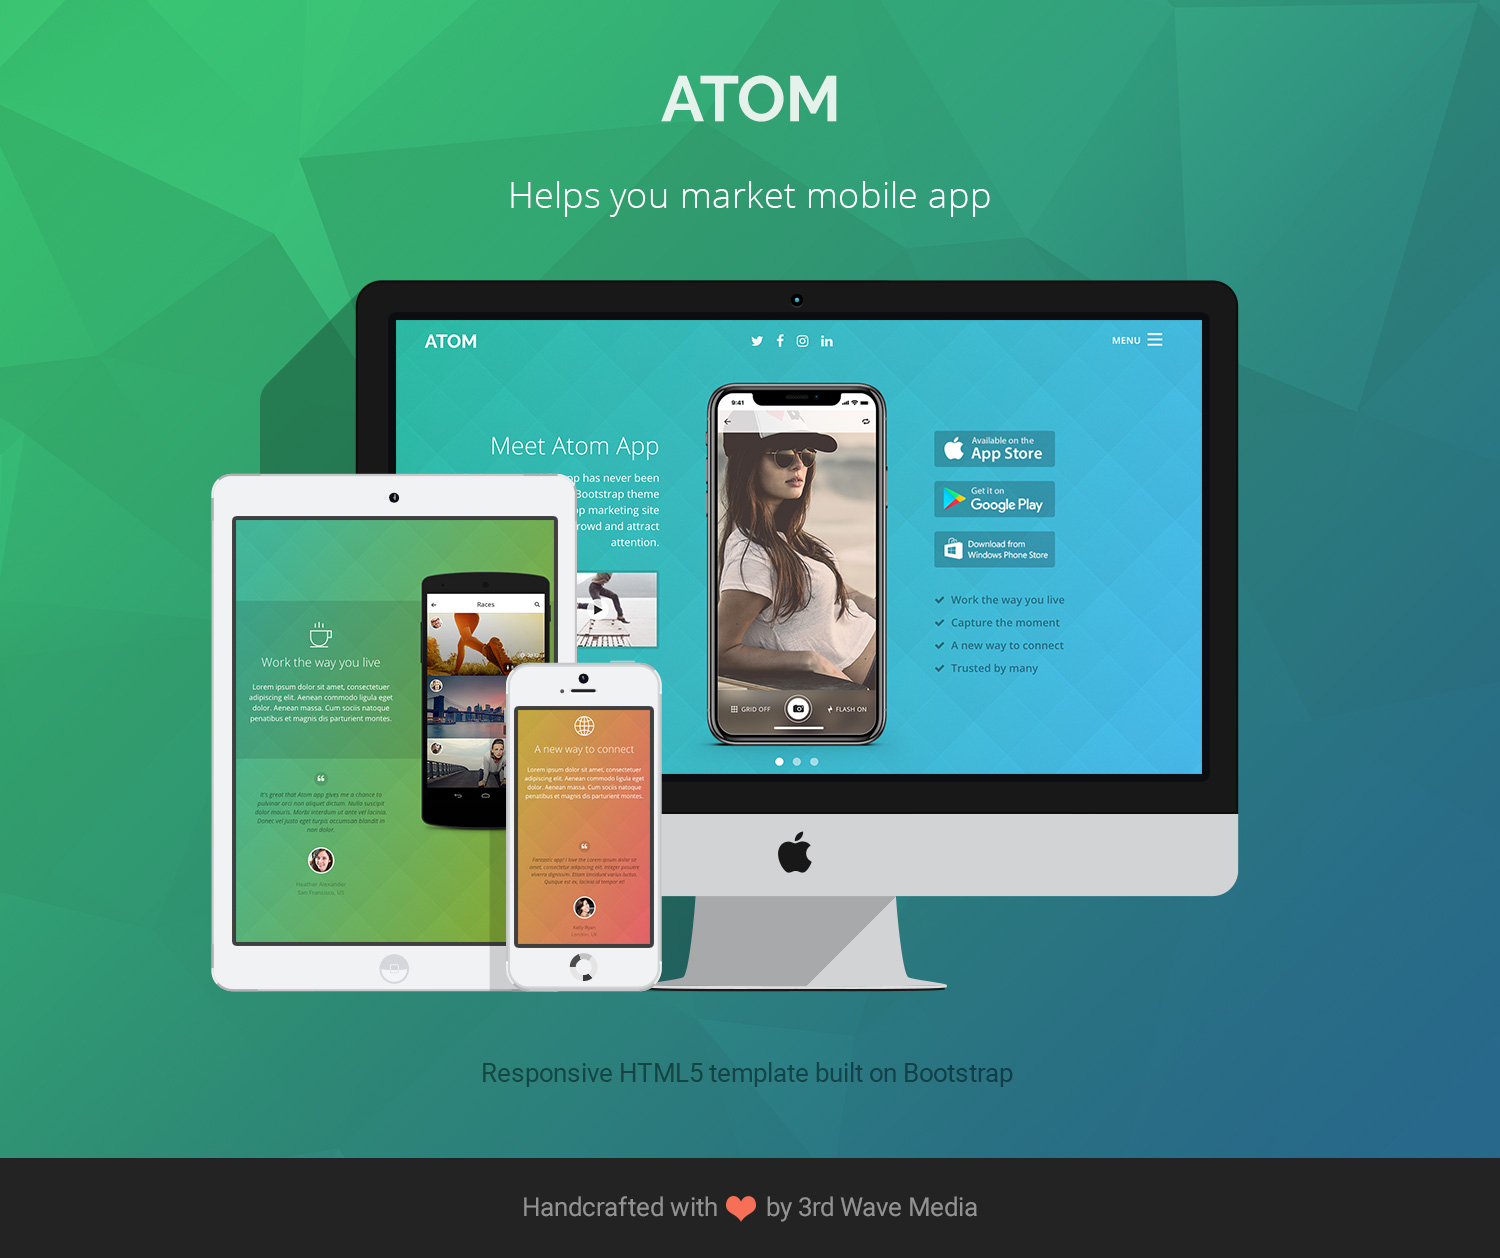 Atom - Designed for mobile apps